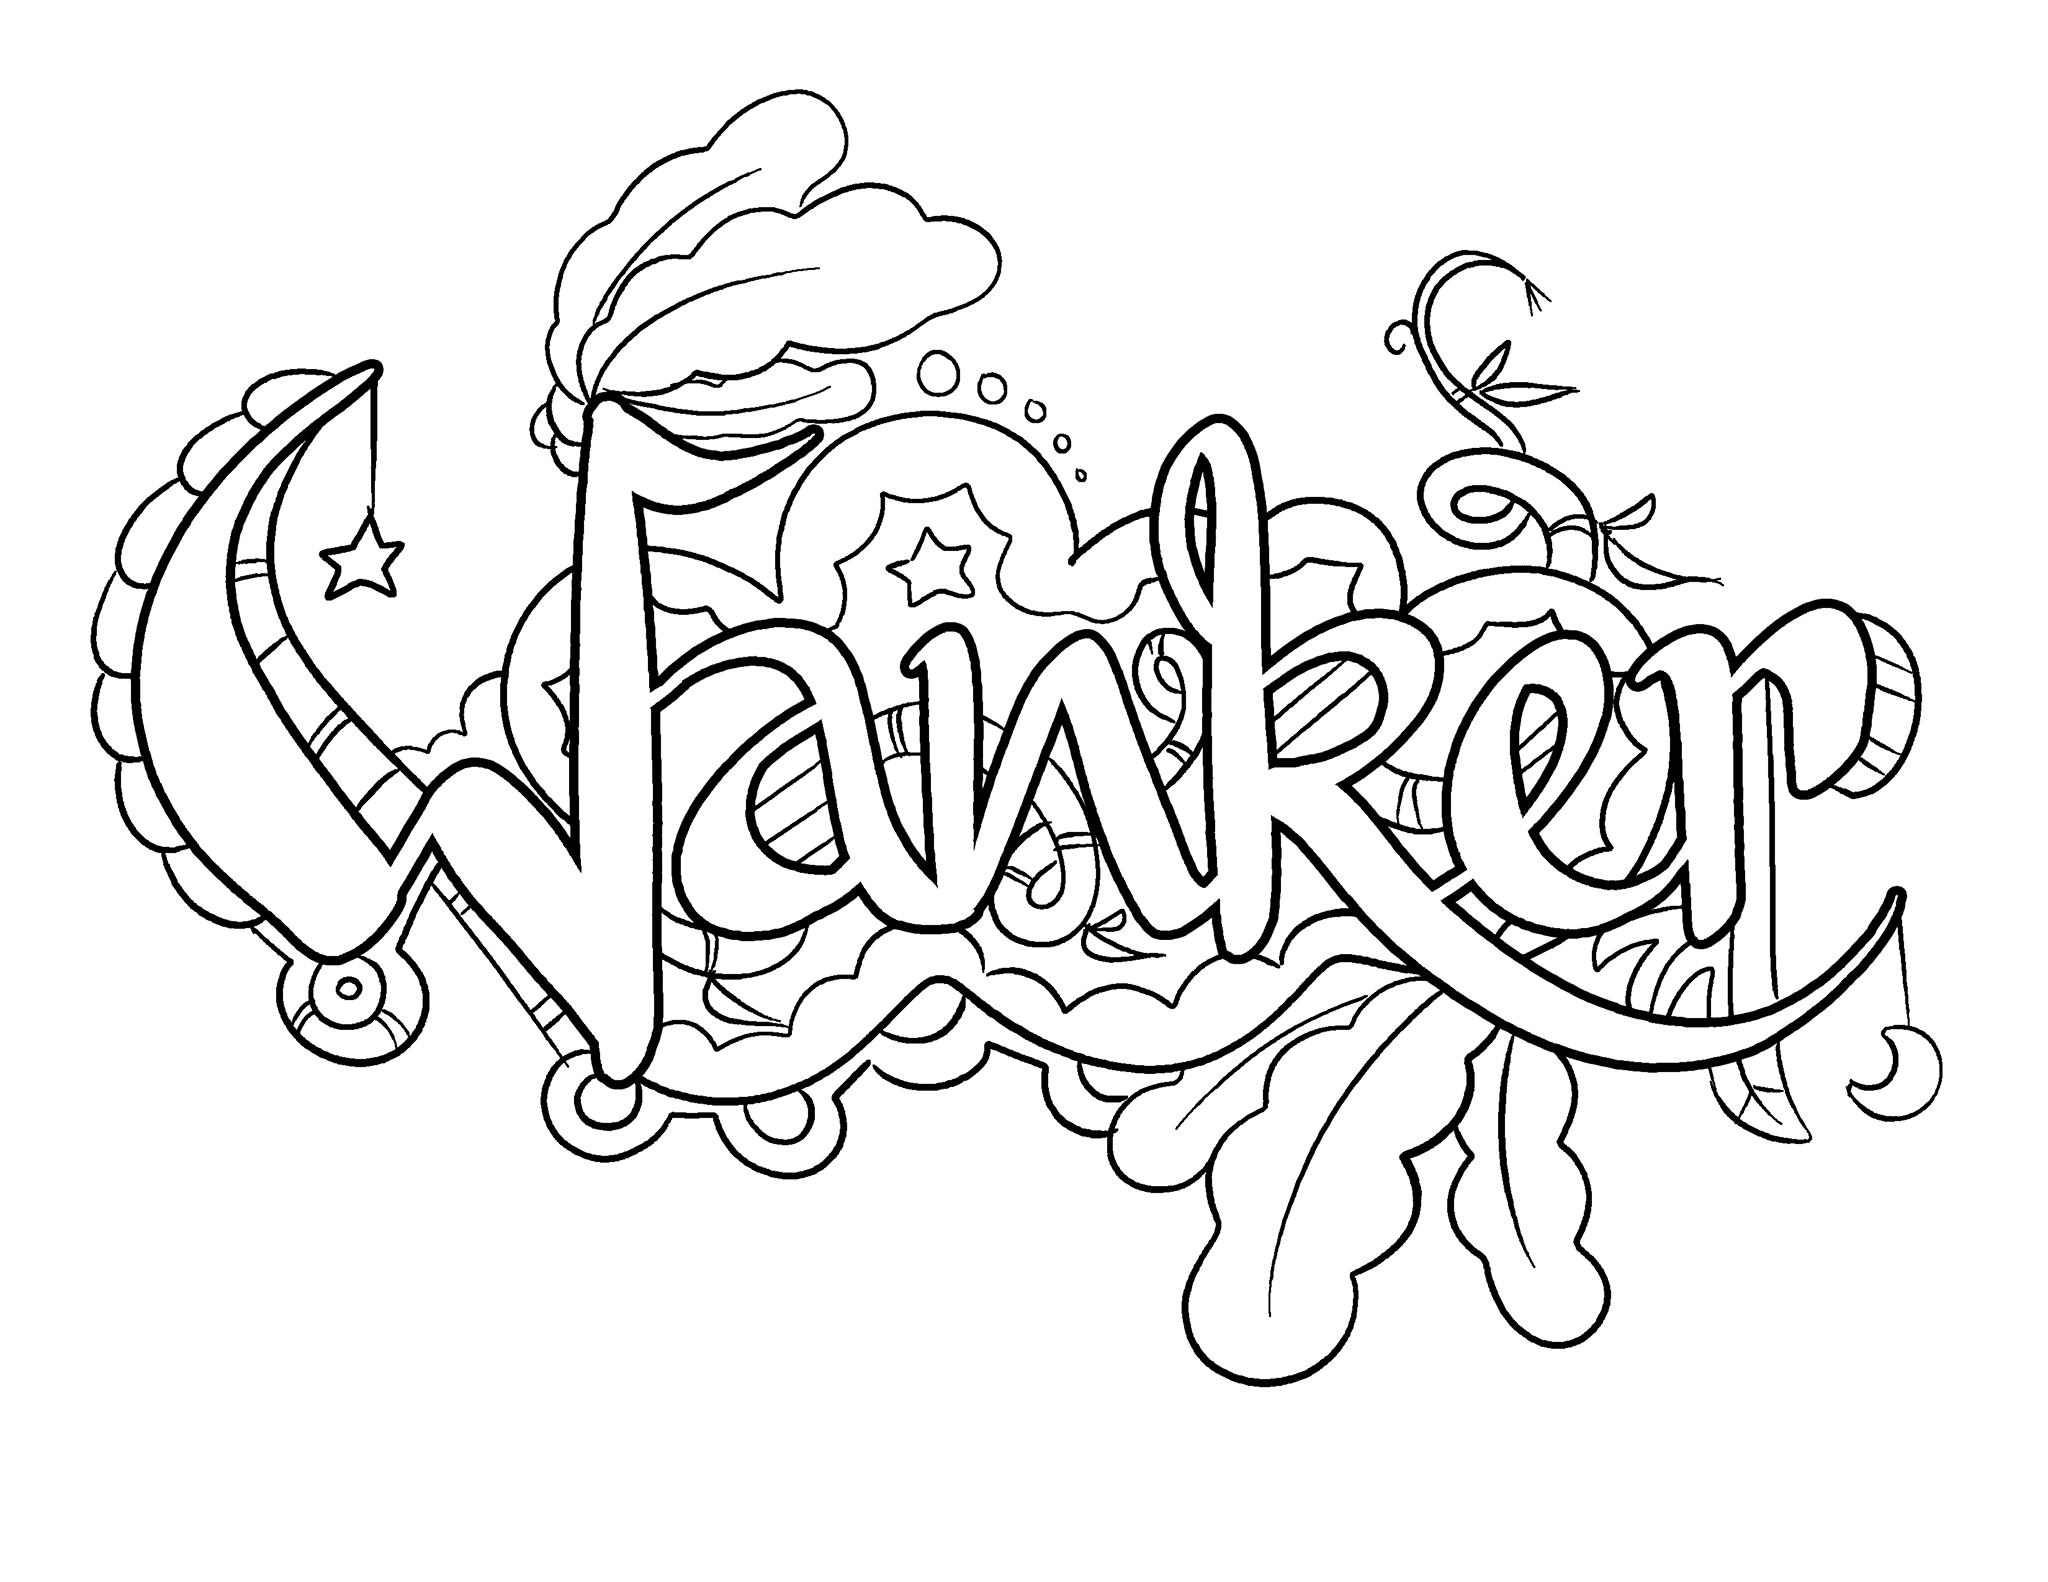 Wanker Coloring Page by Colorful Language Posted with